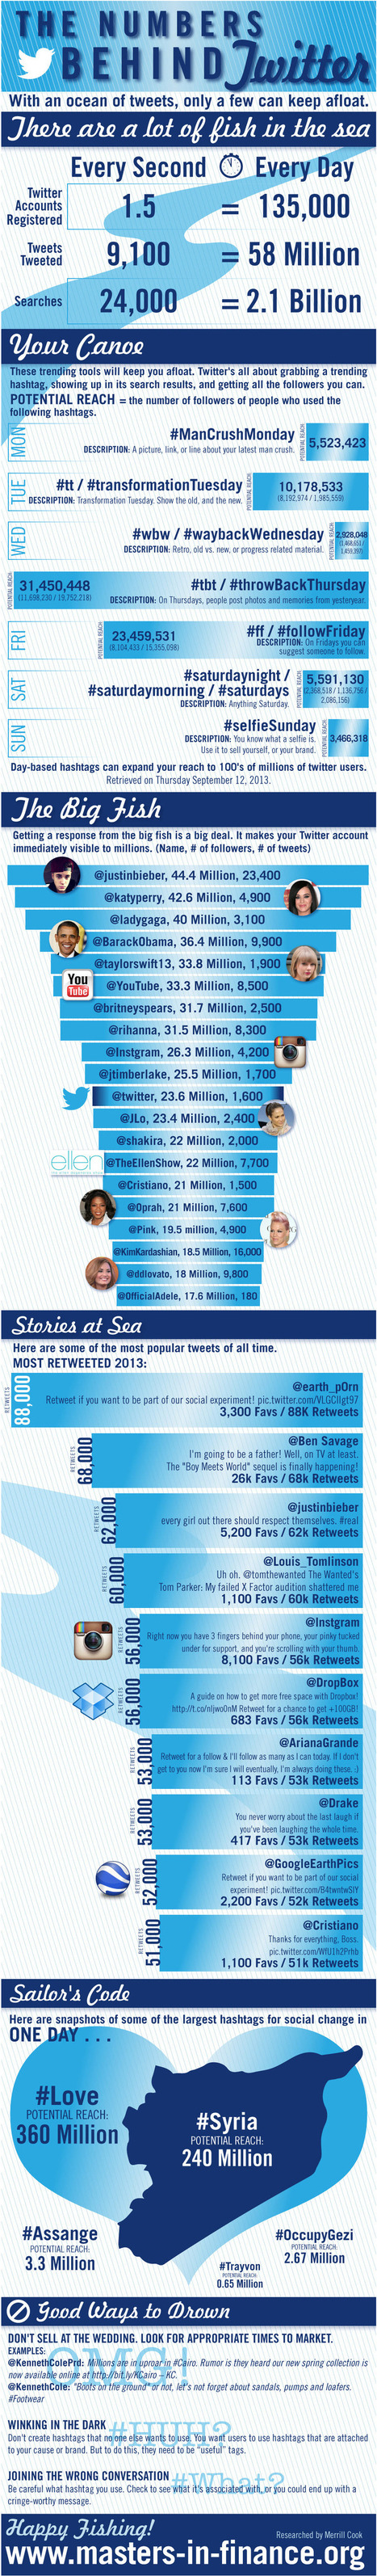 60 Sensational Social Media Facts and Statistics on Twitter in 2013 - Jeffbullas's Blog | Employer branding | Scoop.it